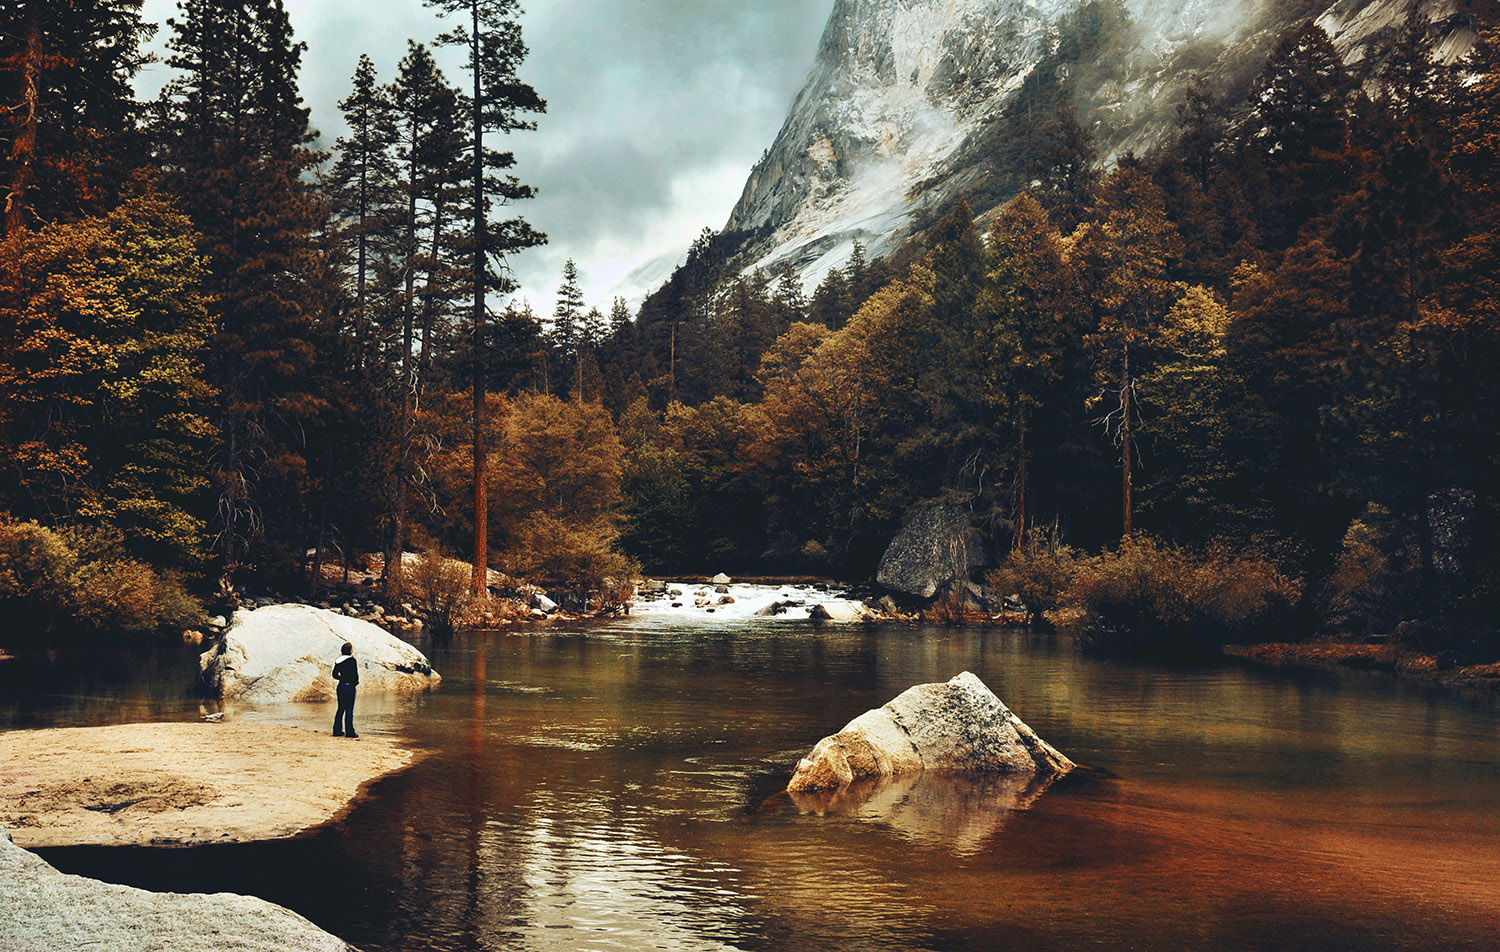 Raphaelle Monvoisin, the Mountains are Calling, Yosemite national park